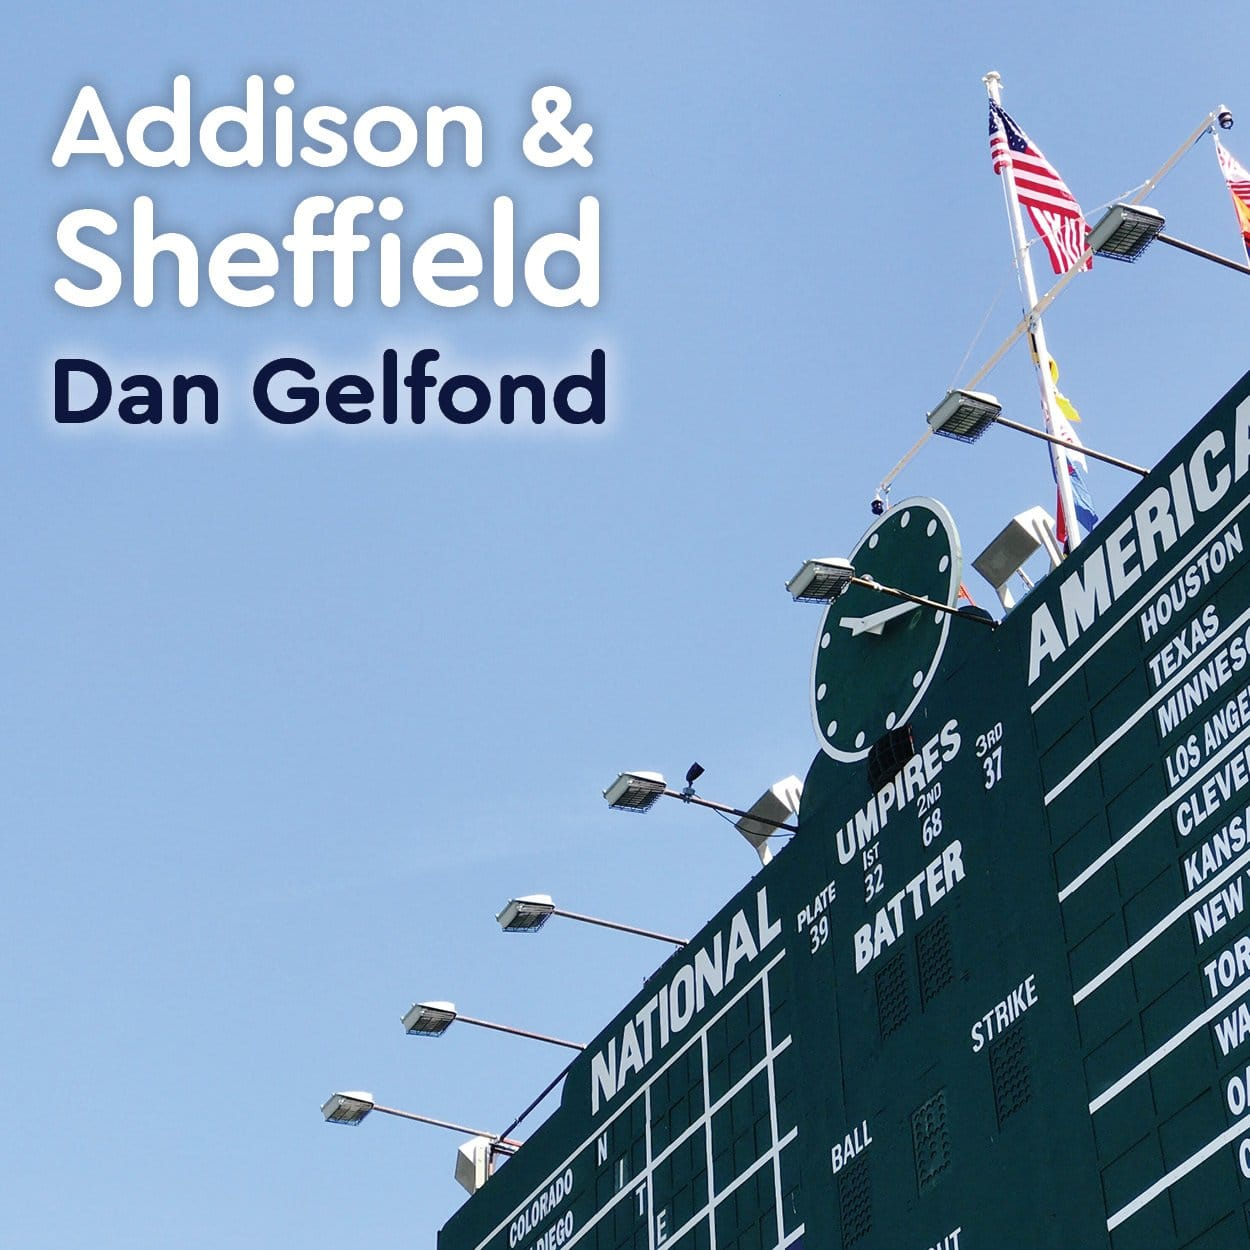 Dan Gelfond at Addison & Sheffield